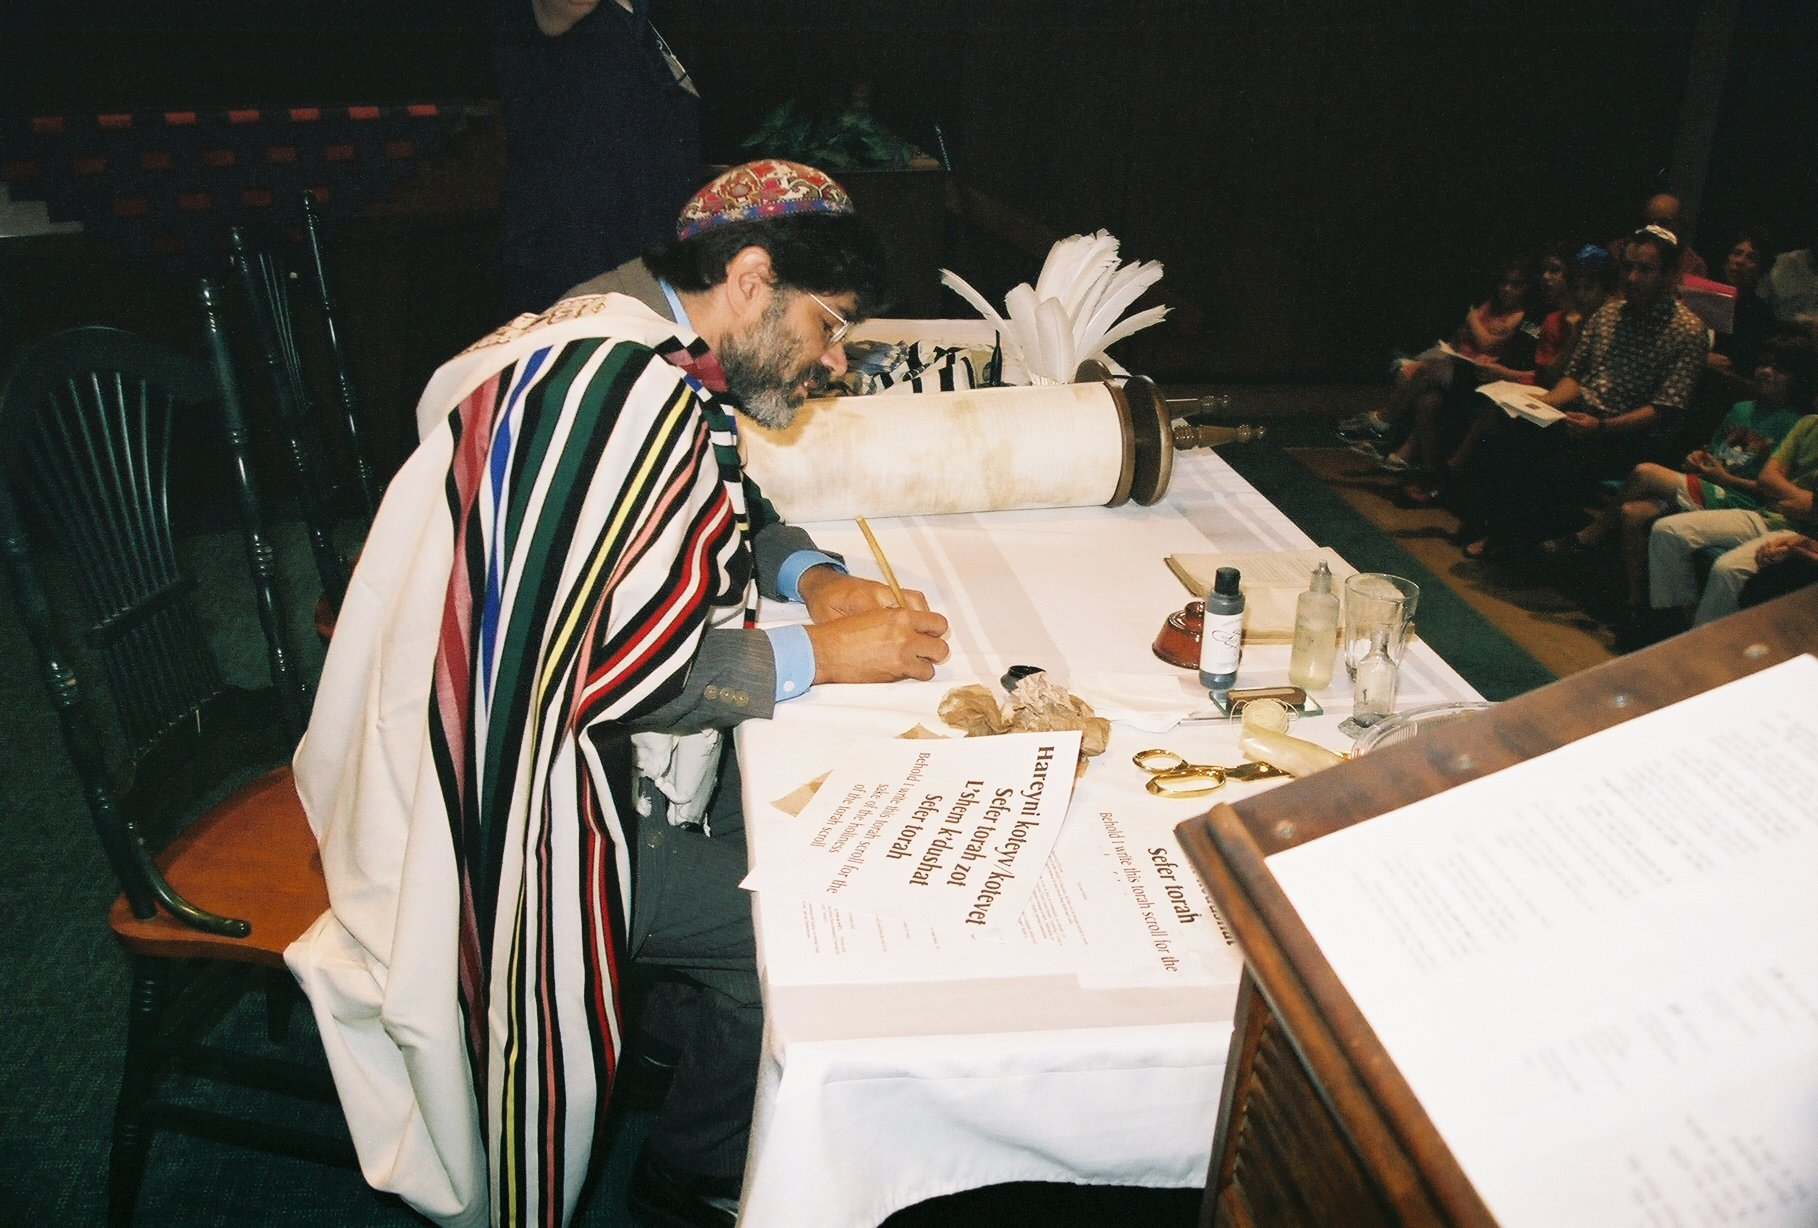 Rabbi Kevin Hale 9 07 at Torah Siyyum